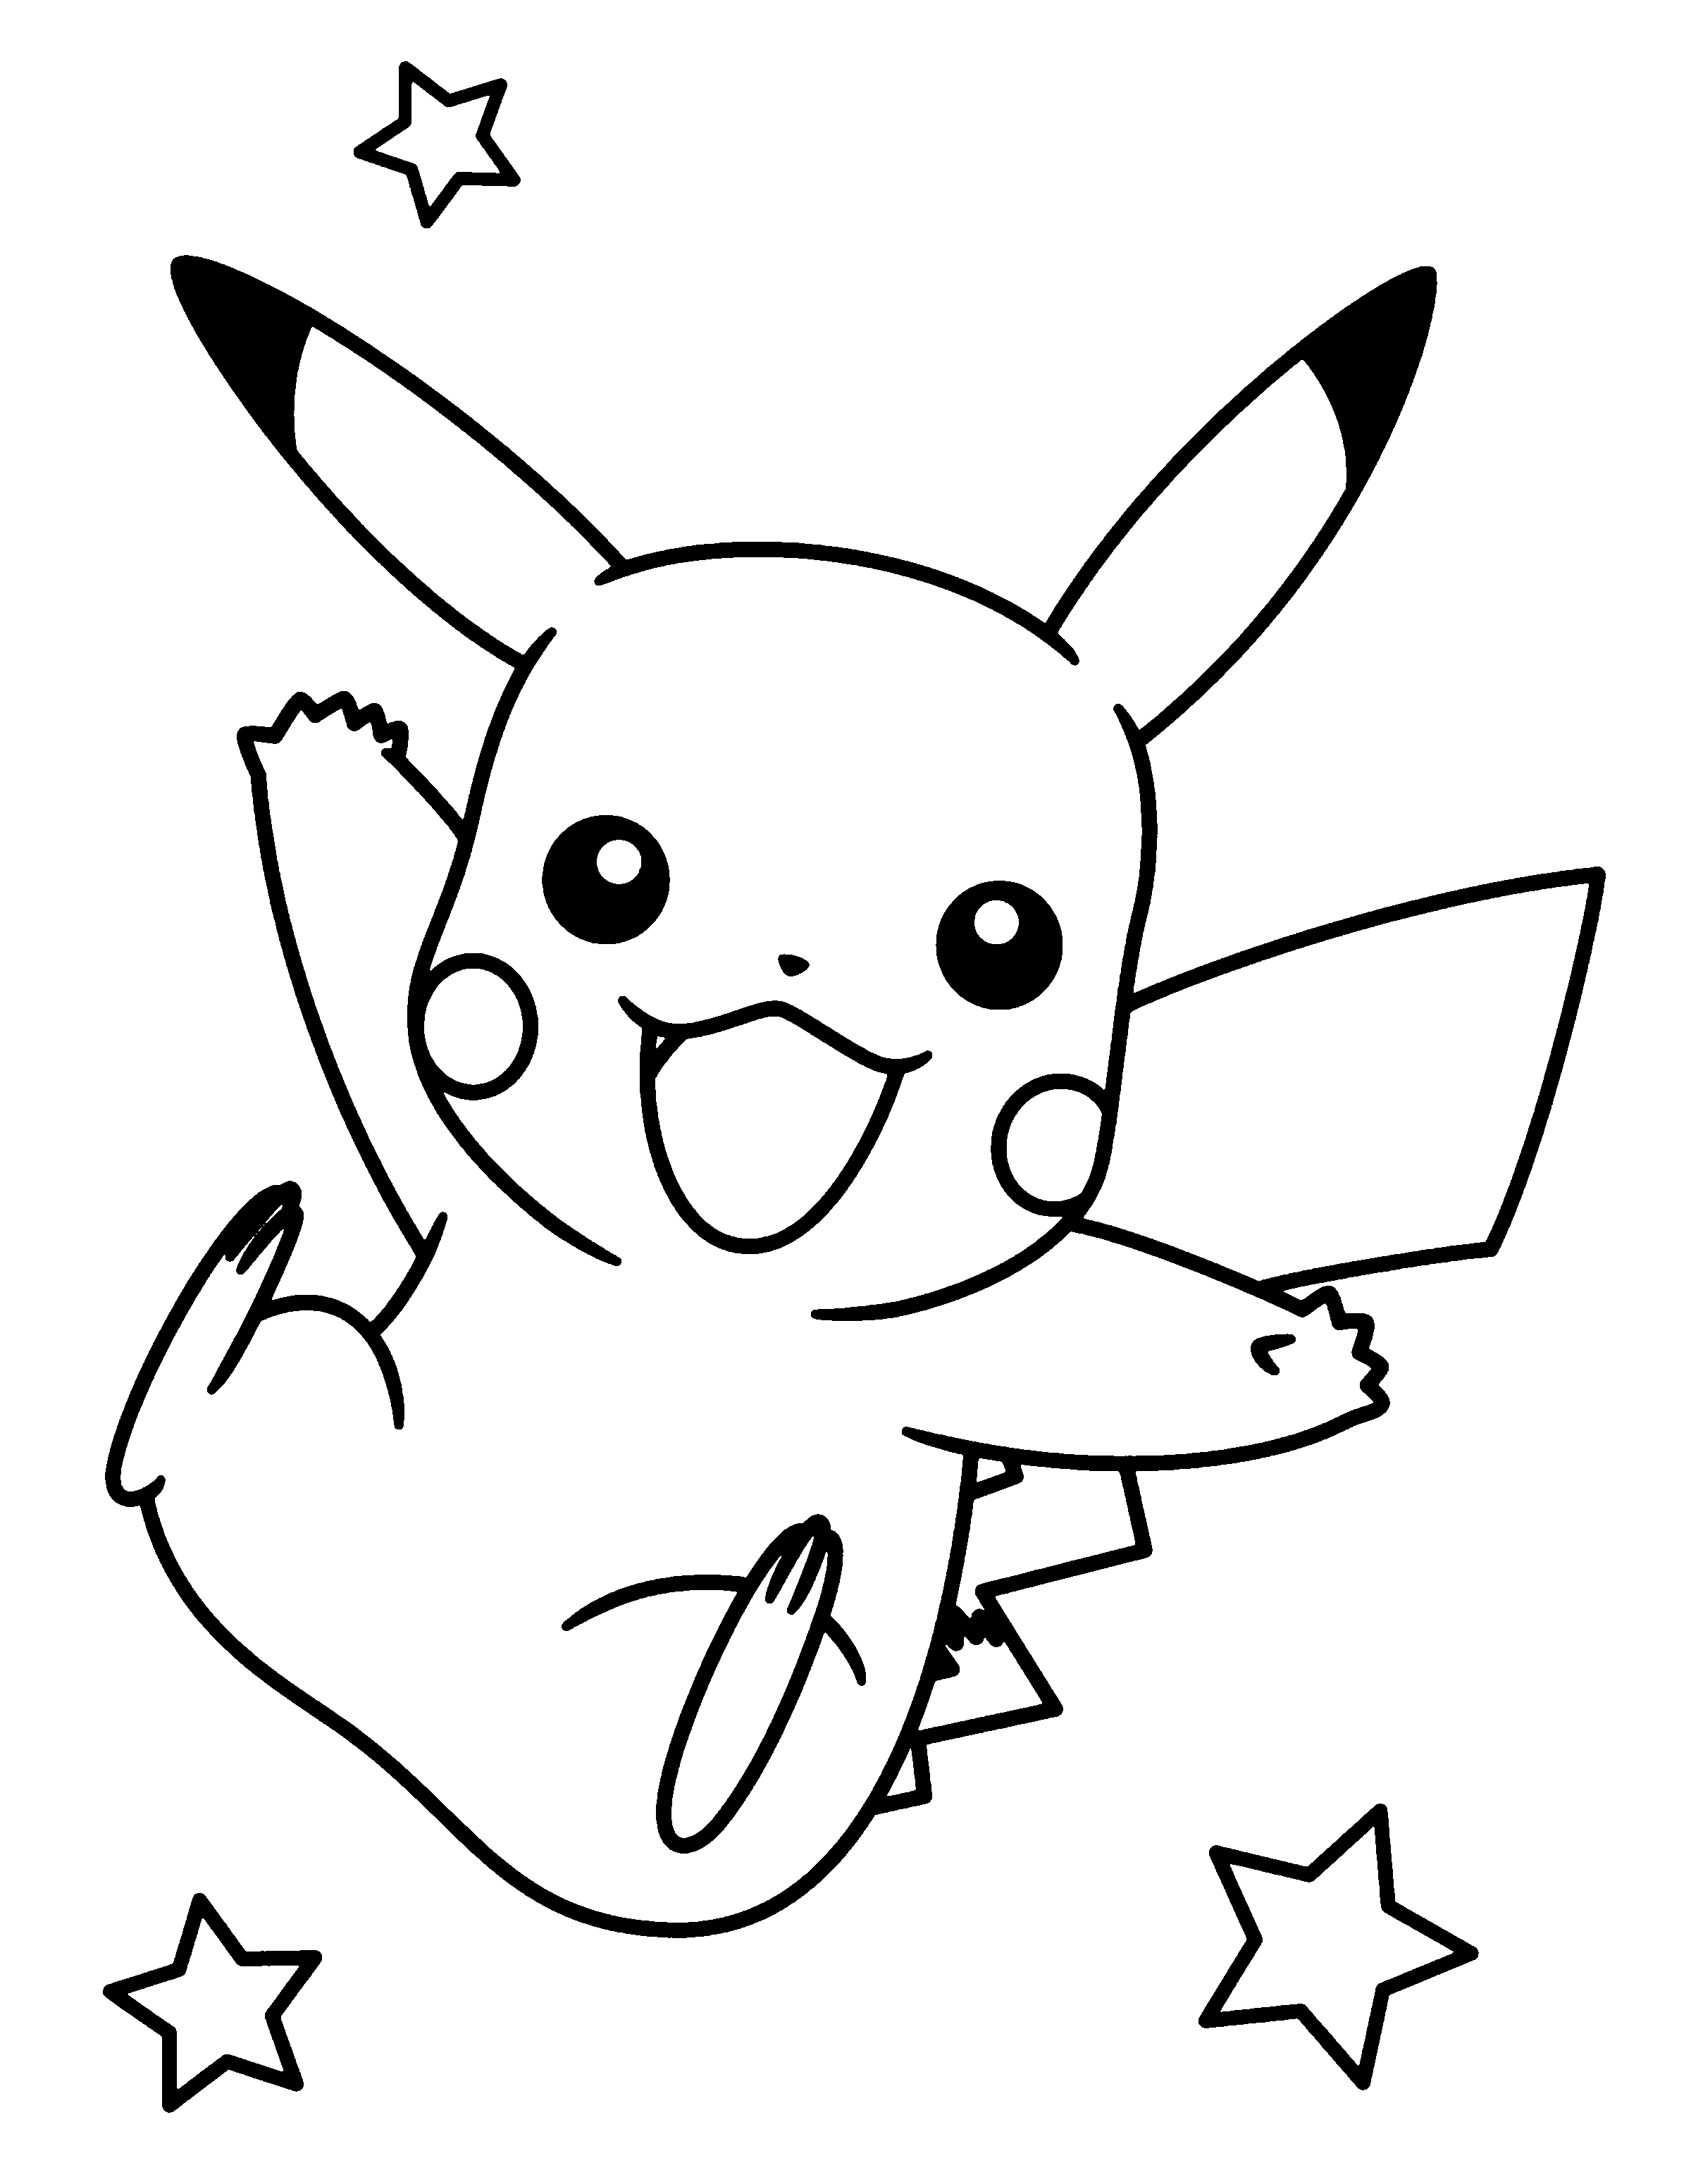 pokemon-diamond-pearl-coloring-pages-65.png (2400×3100) | Pikachu ...